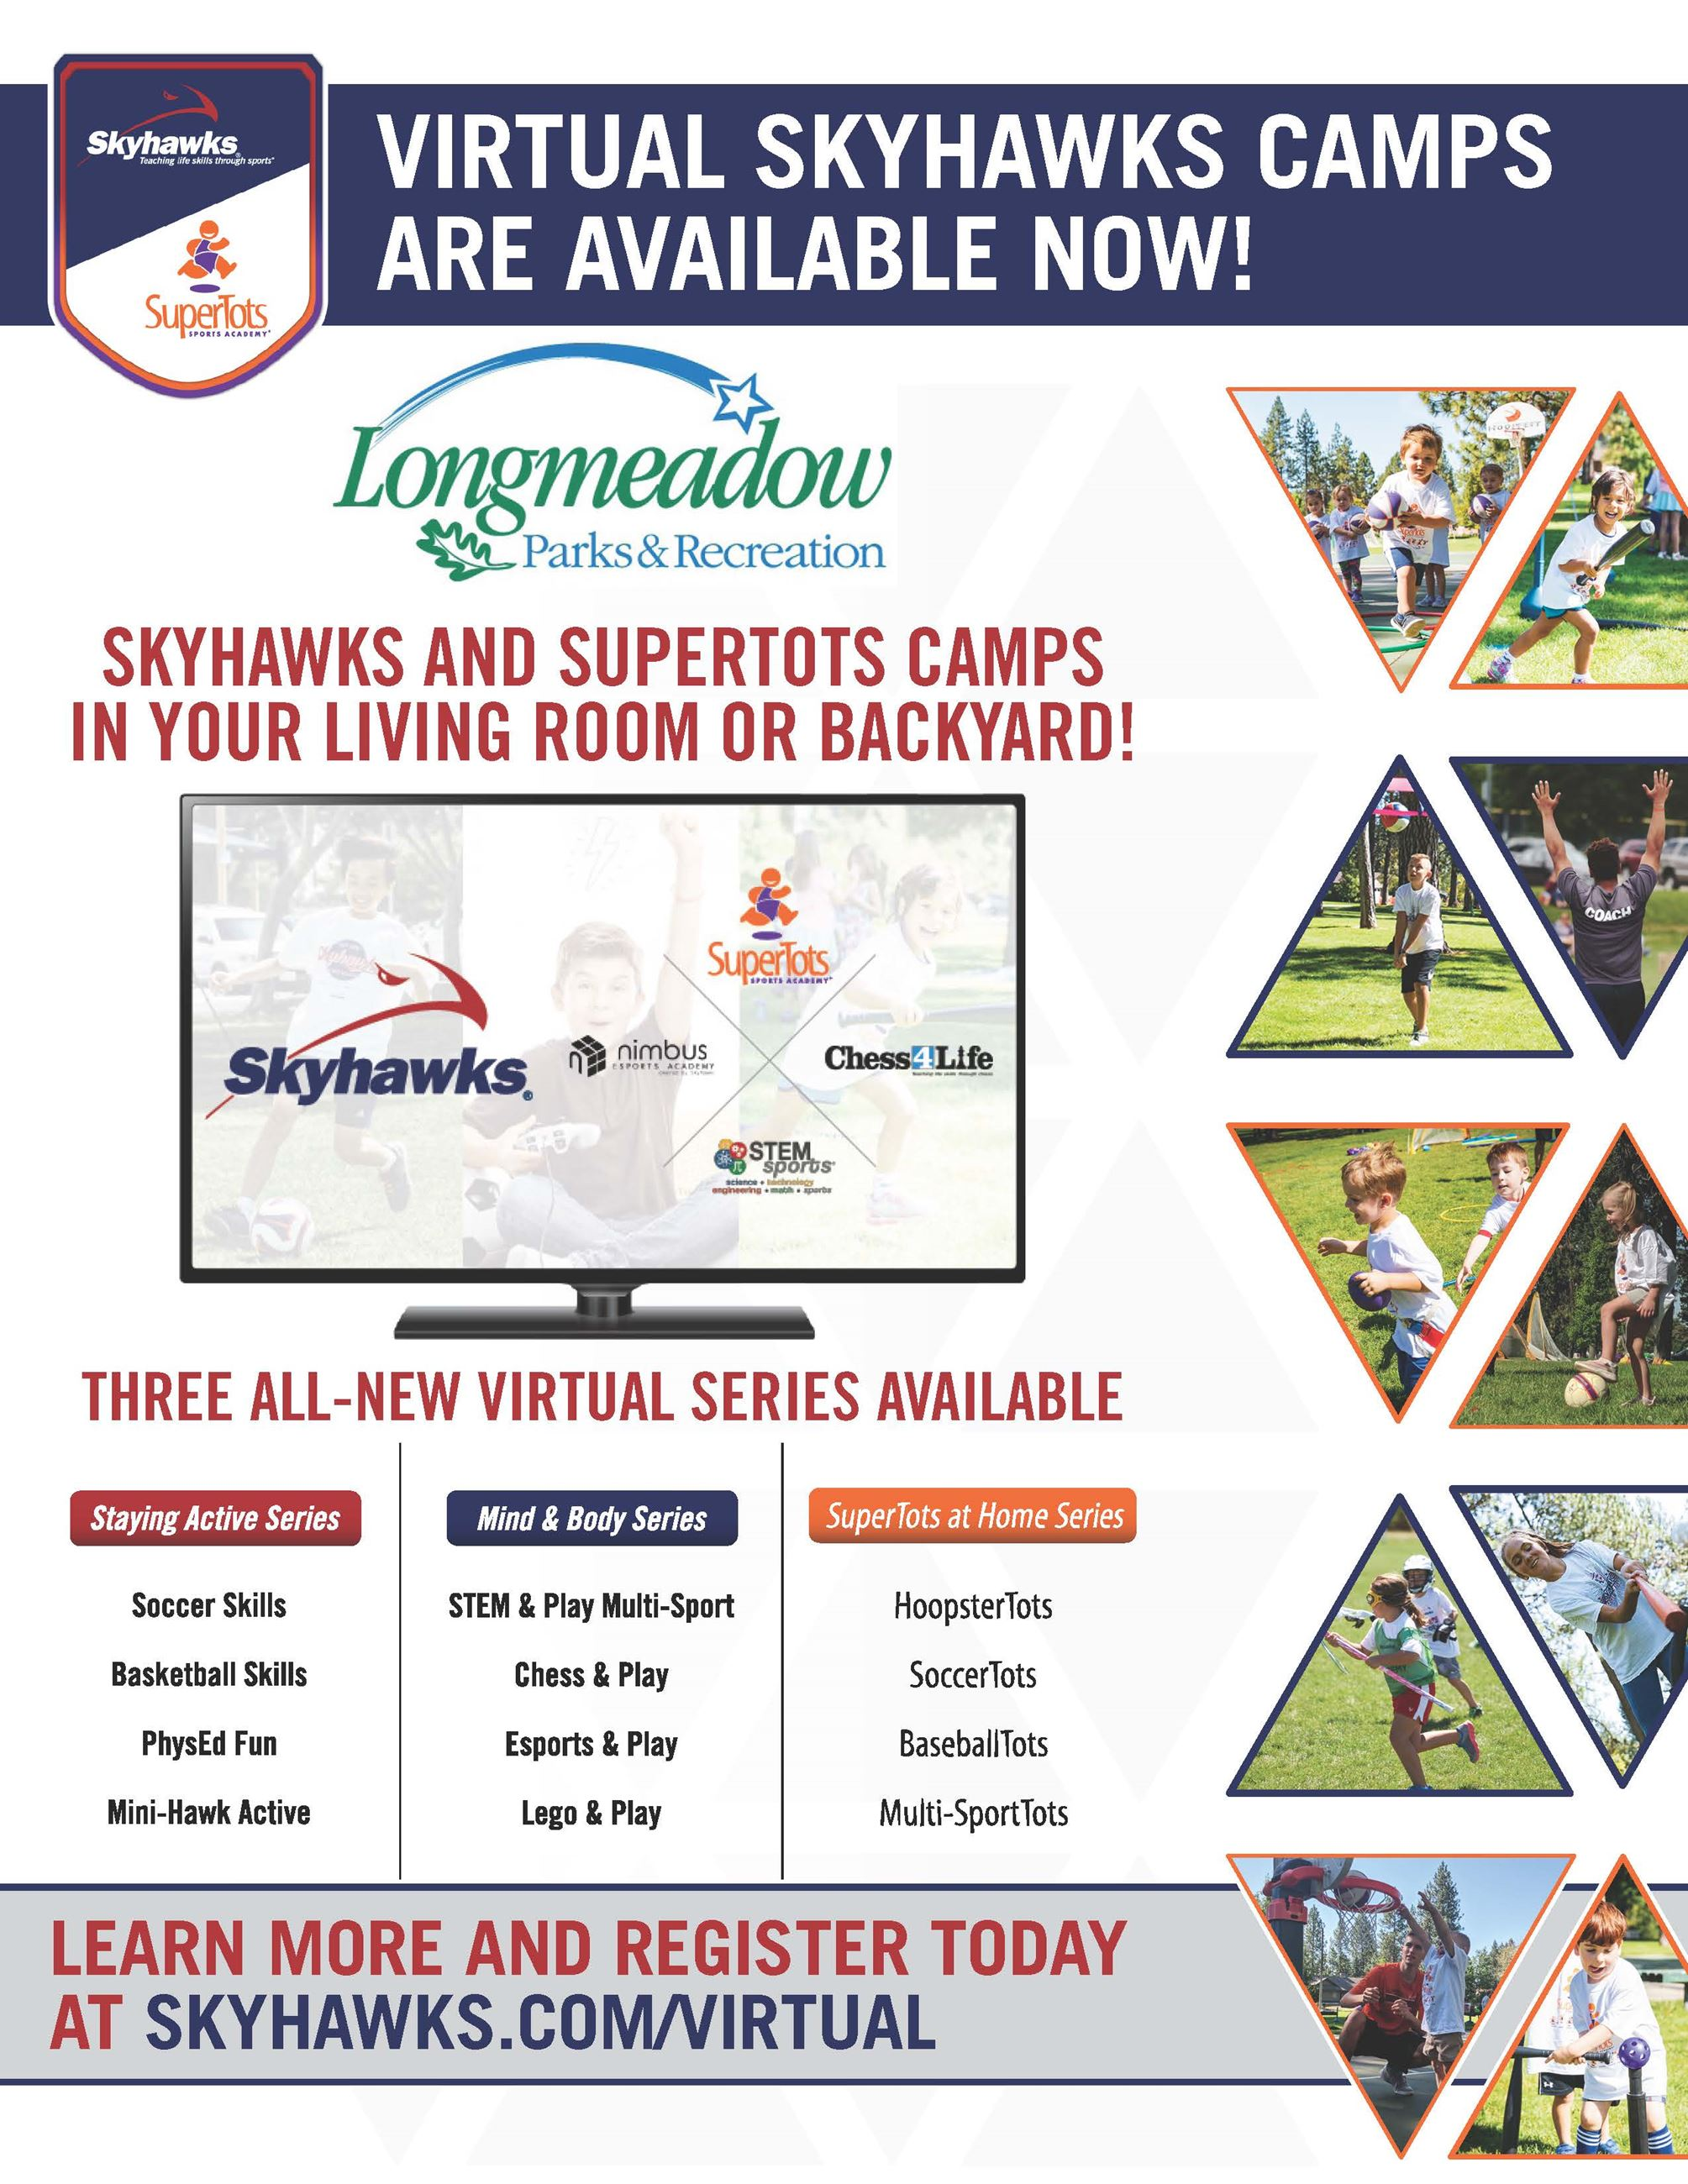 Skyhawks- Longmeadow Parks and Recreation Virtual (1)_Page_1